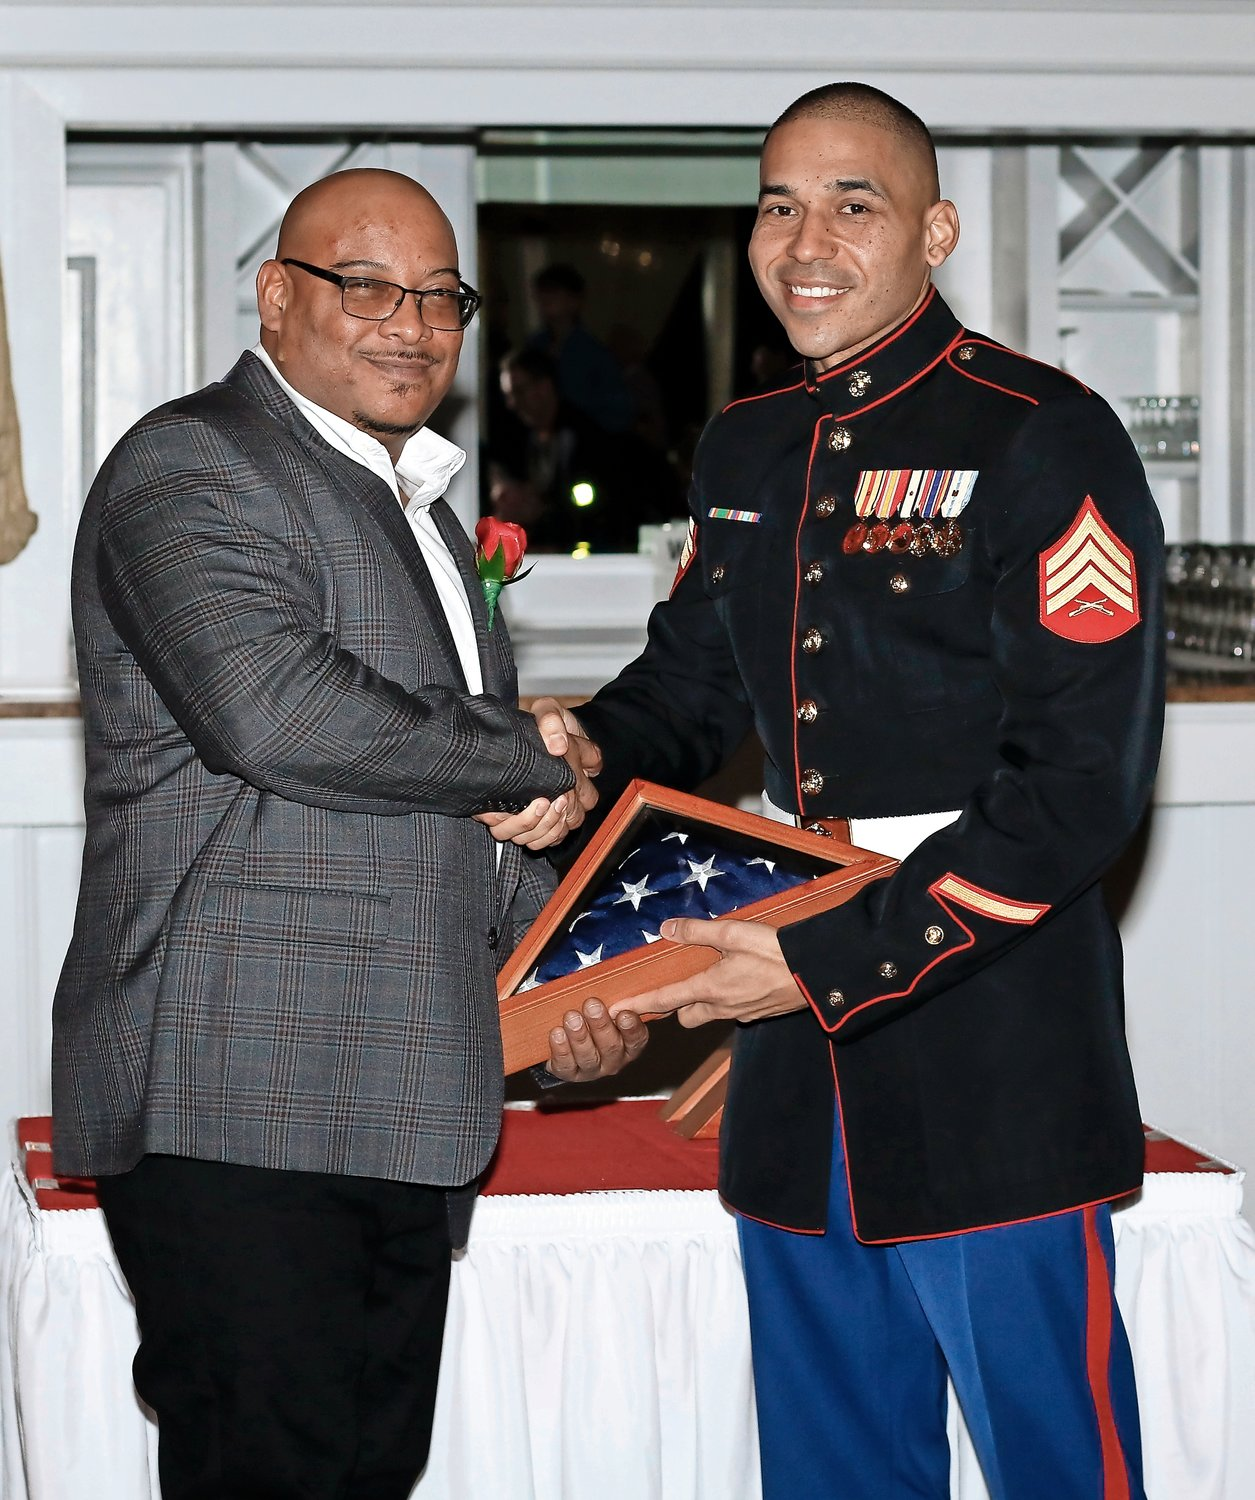 Active duty Marine Sgt. Jason Hanna, right, presented Lance Cpl. Jason Rogers and three other honored veterans with American flags at the Island Park Civic Association's annual Love Your Troops event on Feb. 8.